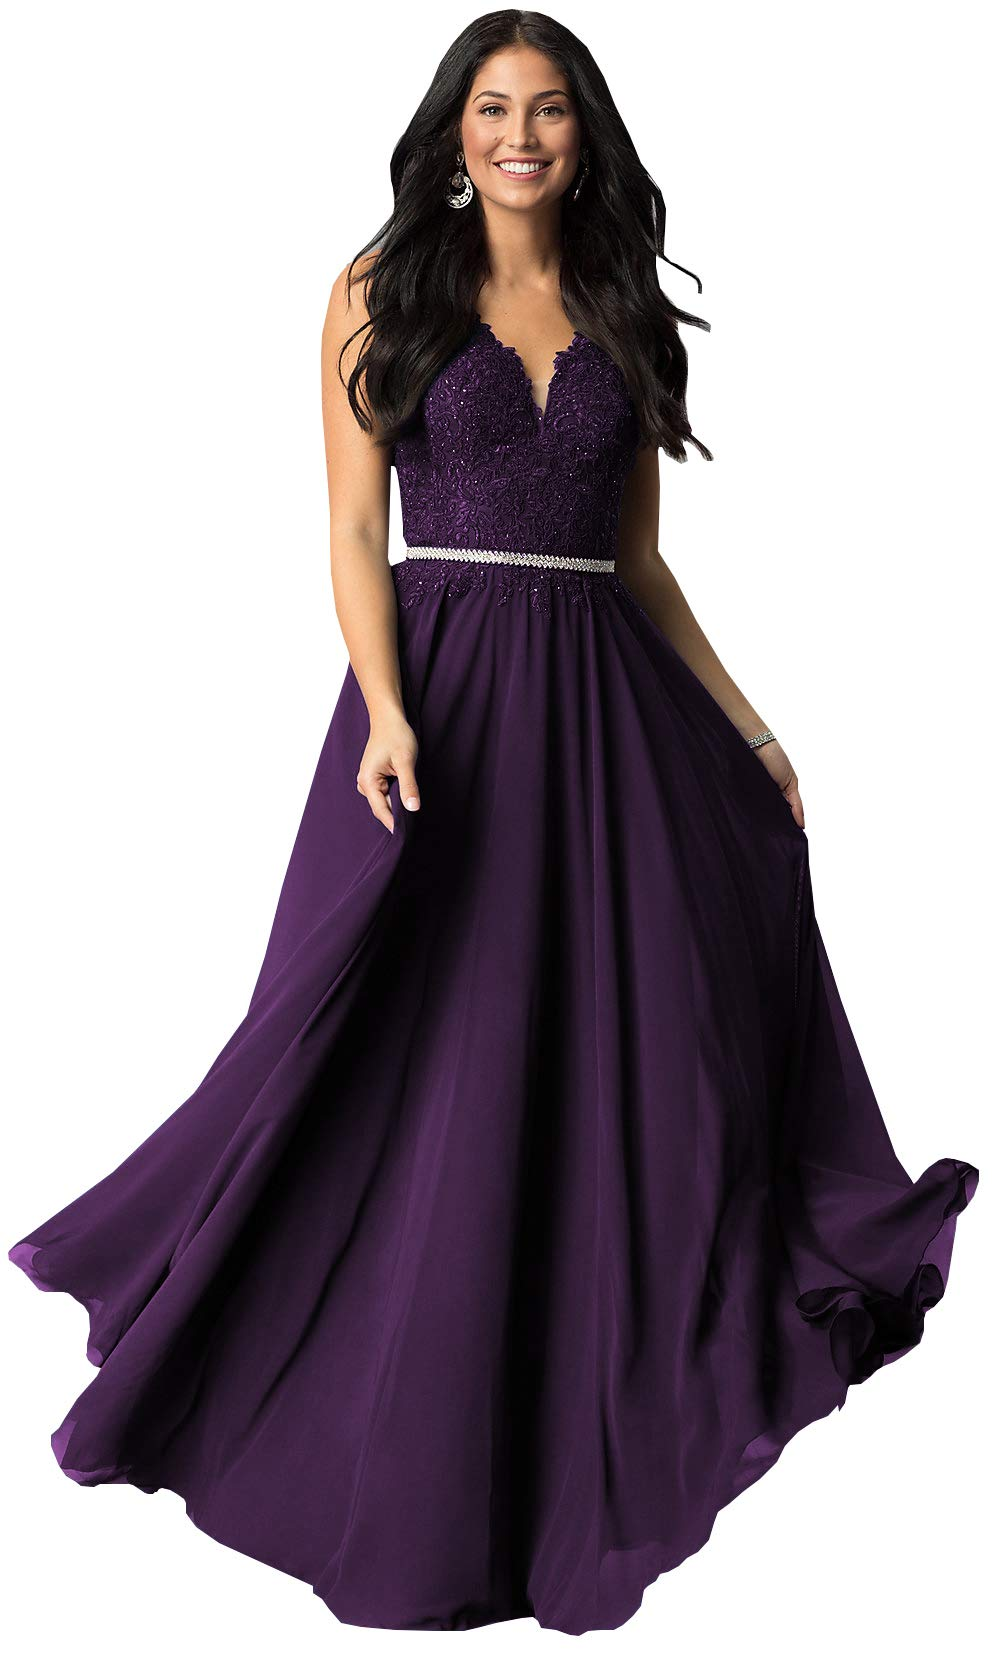 Plus Size Sleeveless Lace Chiffon Bridesmaid Dresses Long Formal Party Prom Gown (Plum,18W)